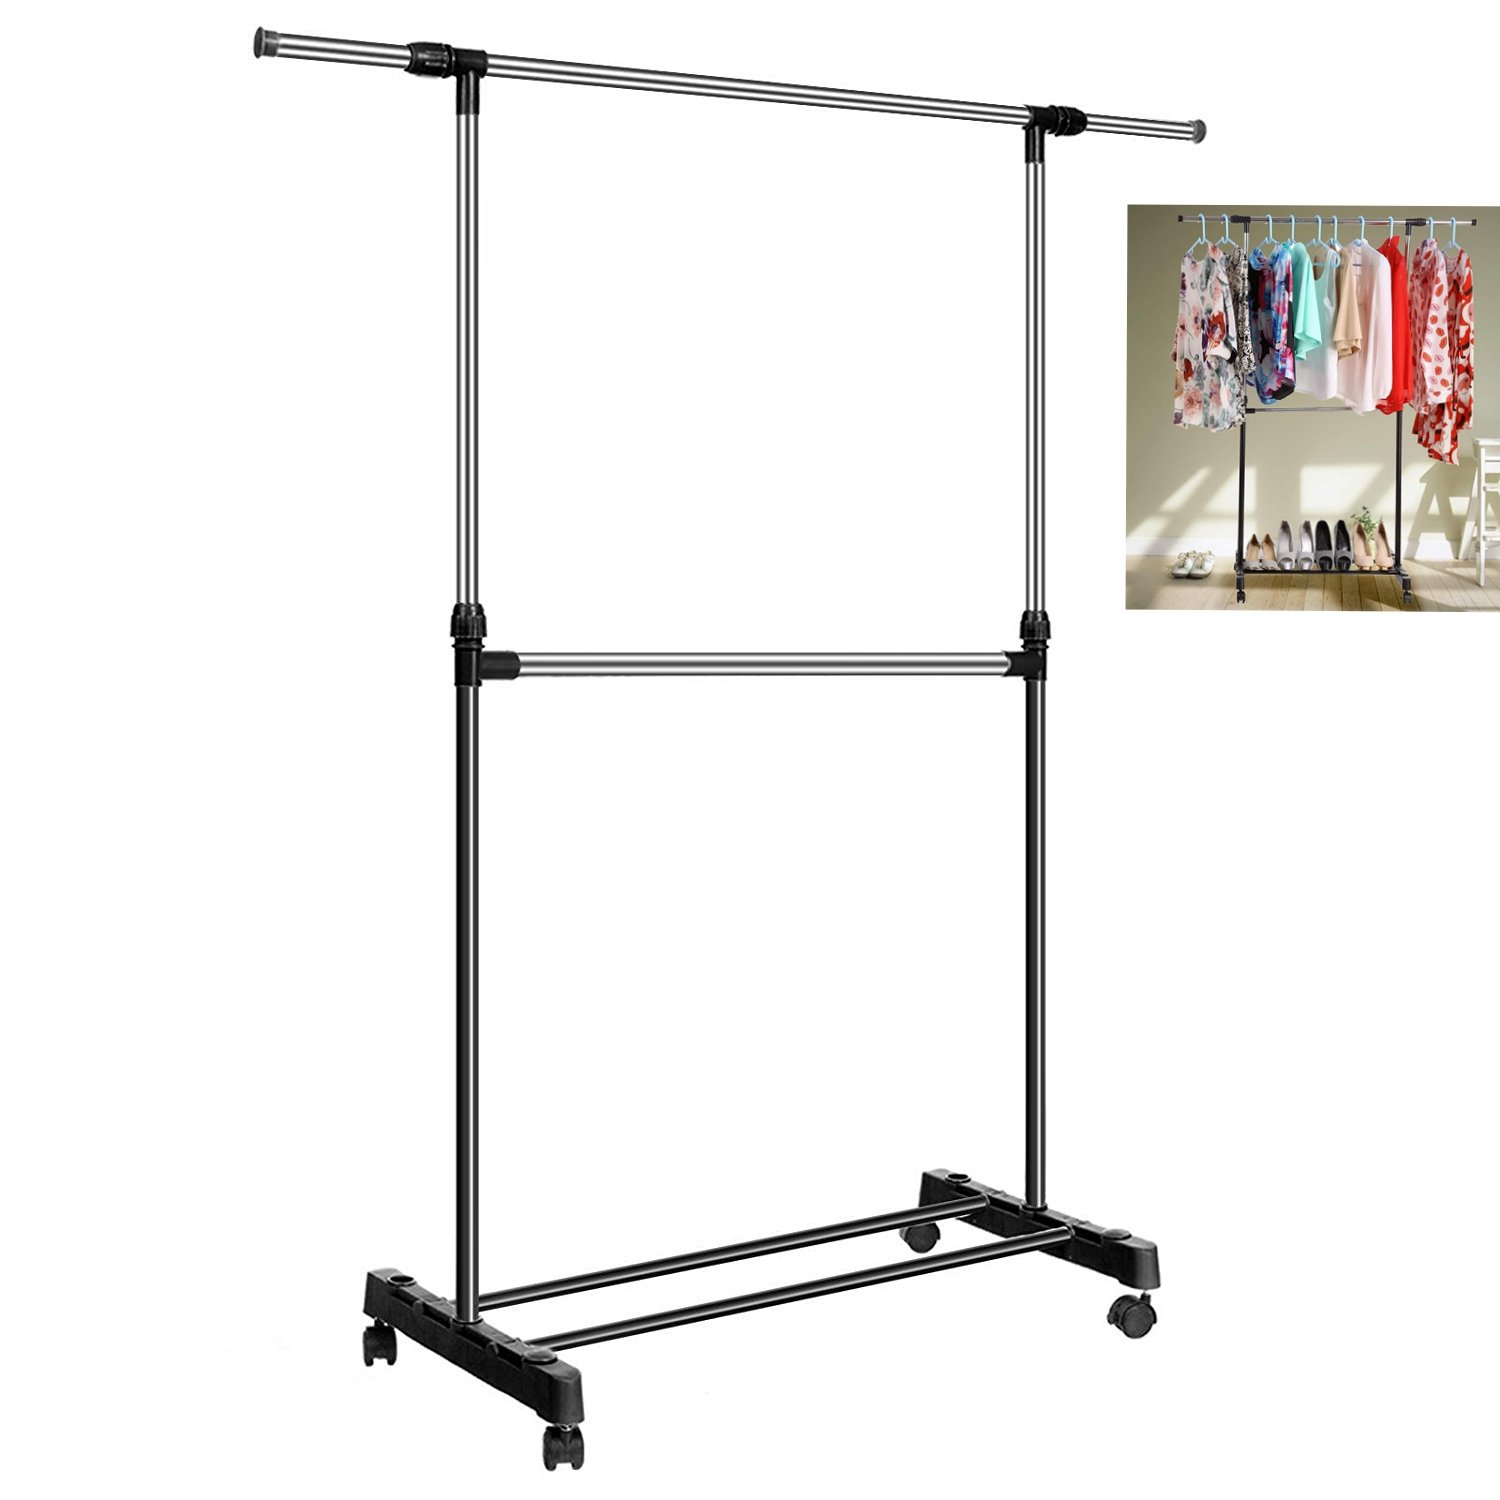 Fashine Stainless Steel Adjustable Telescopic Garment Drying Rack with 4 360 degree wheels [US Stock] by Fashine